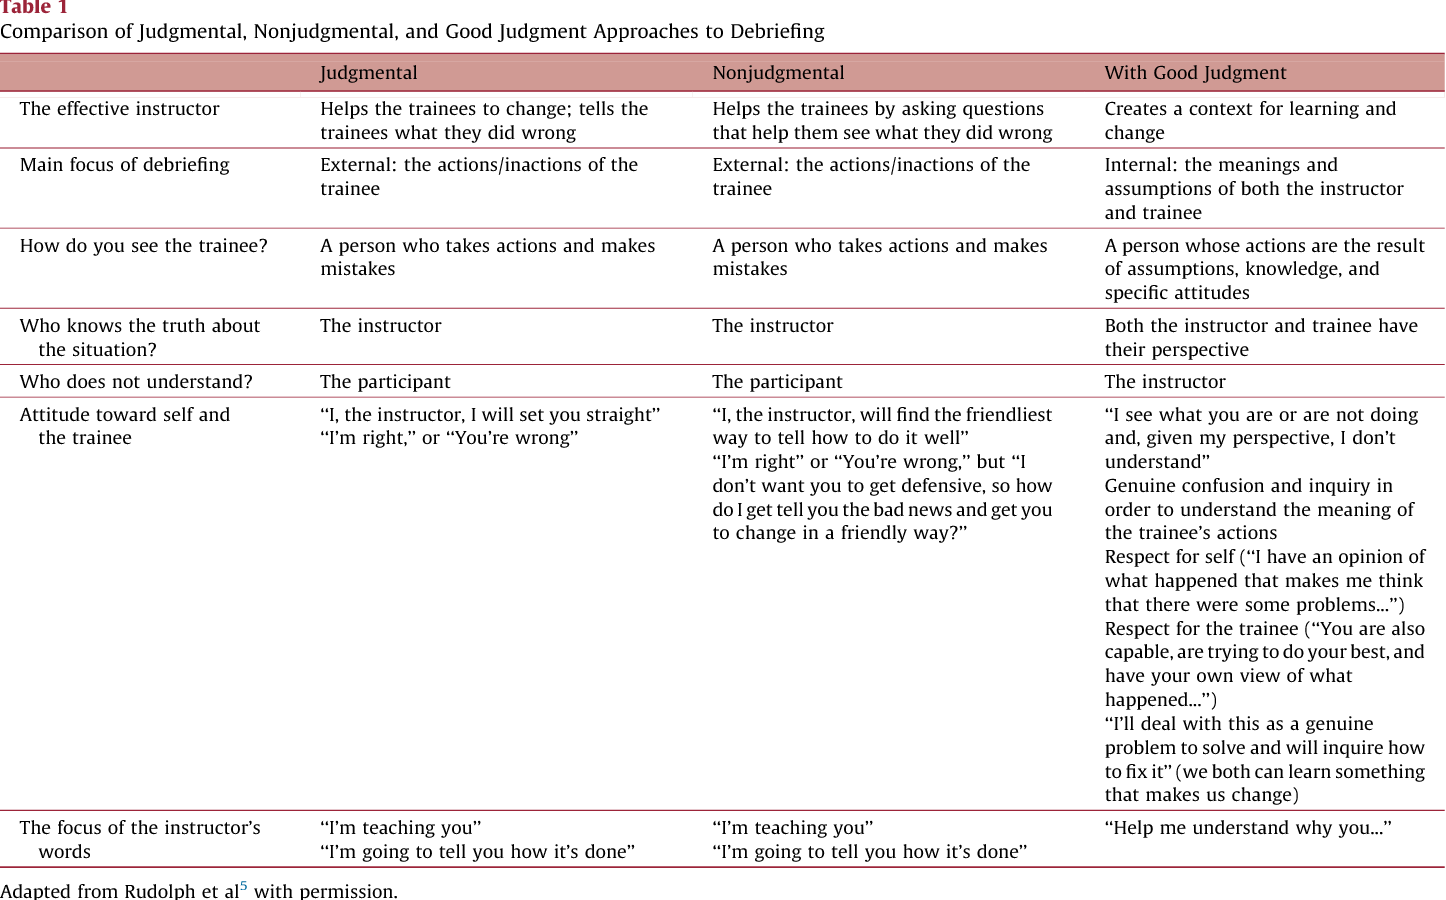 Theories and styles of debriefing: the good judgment method as a